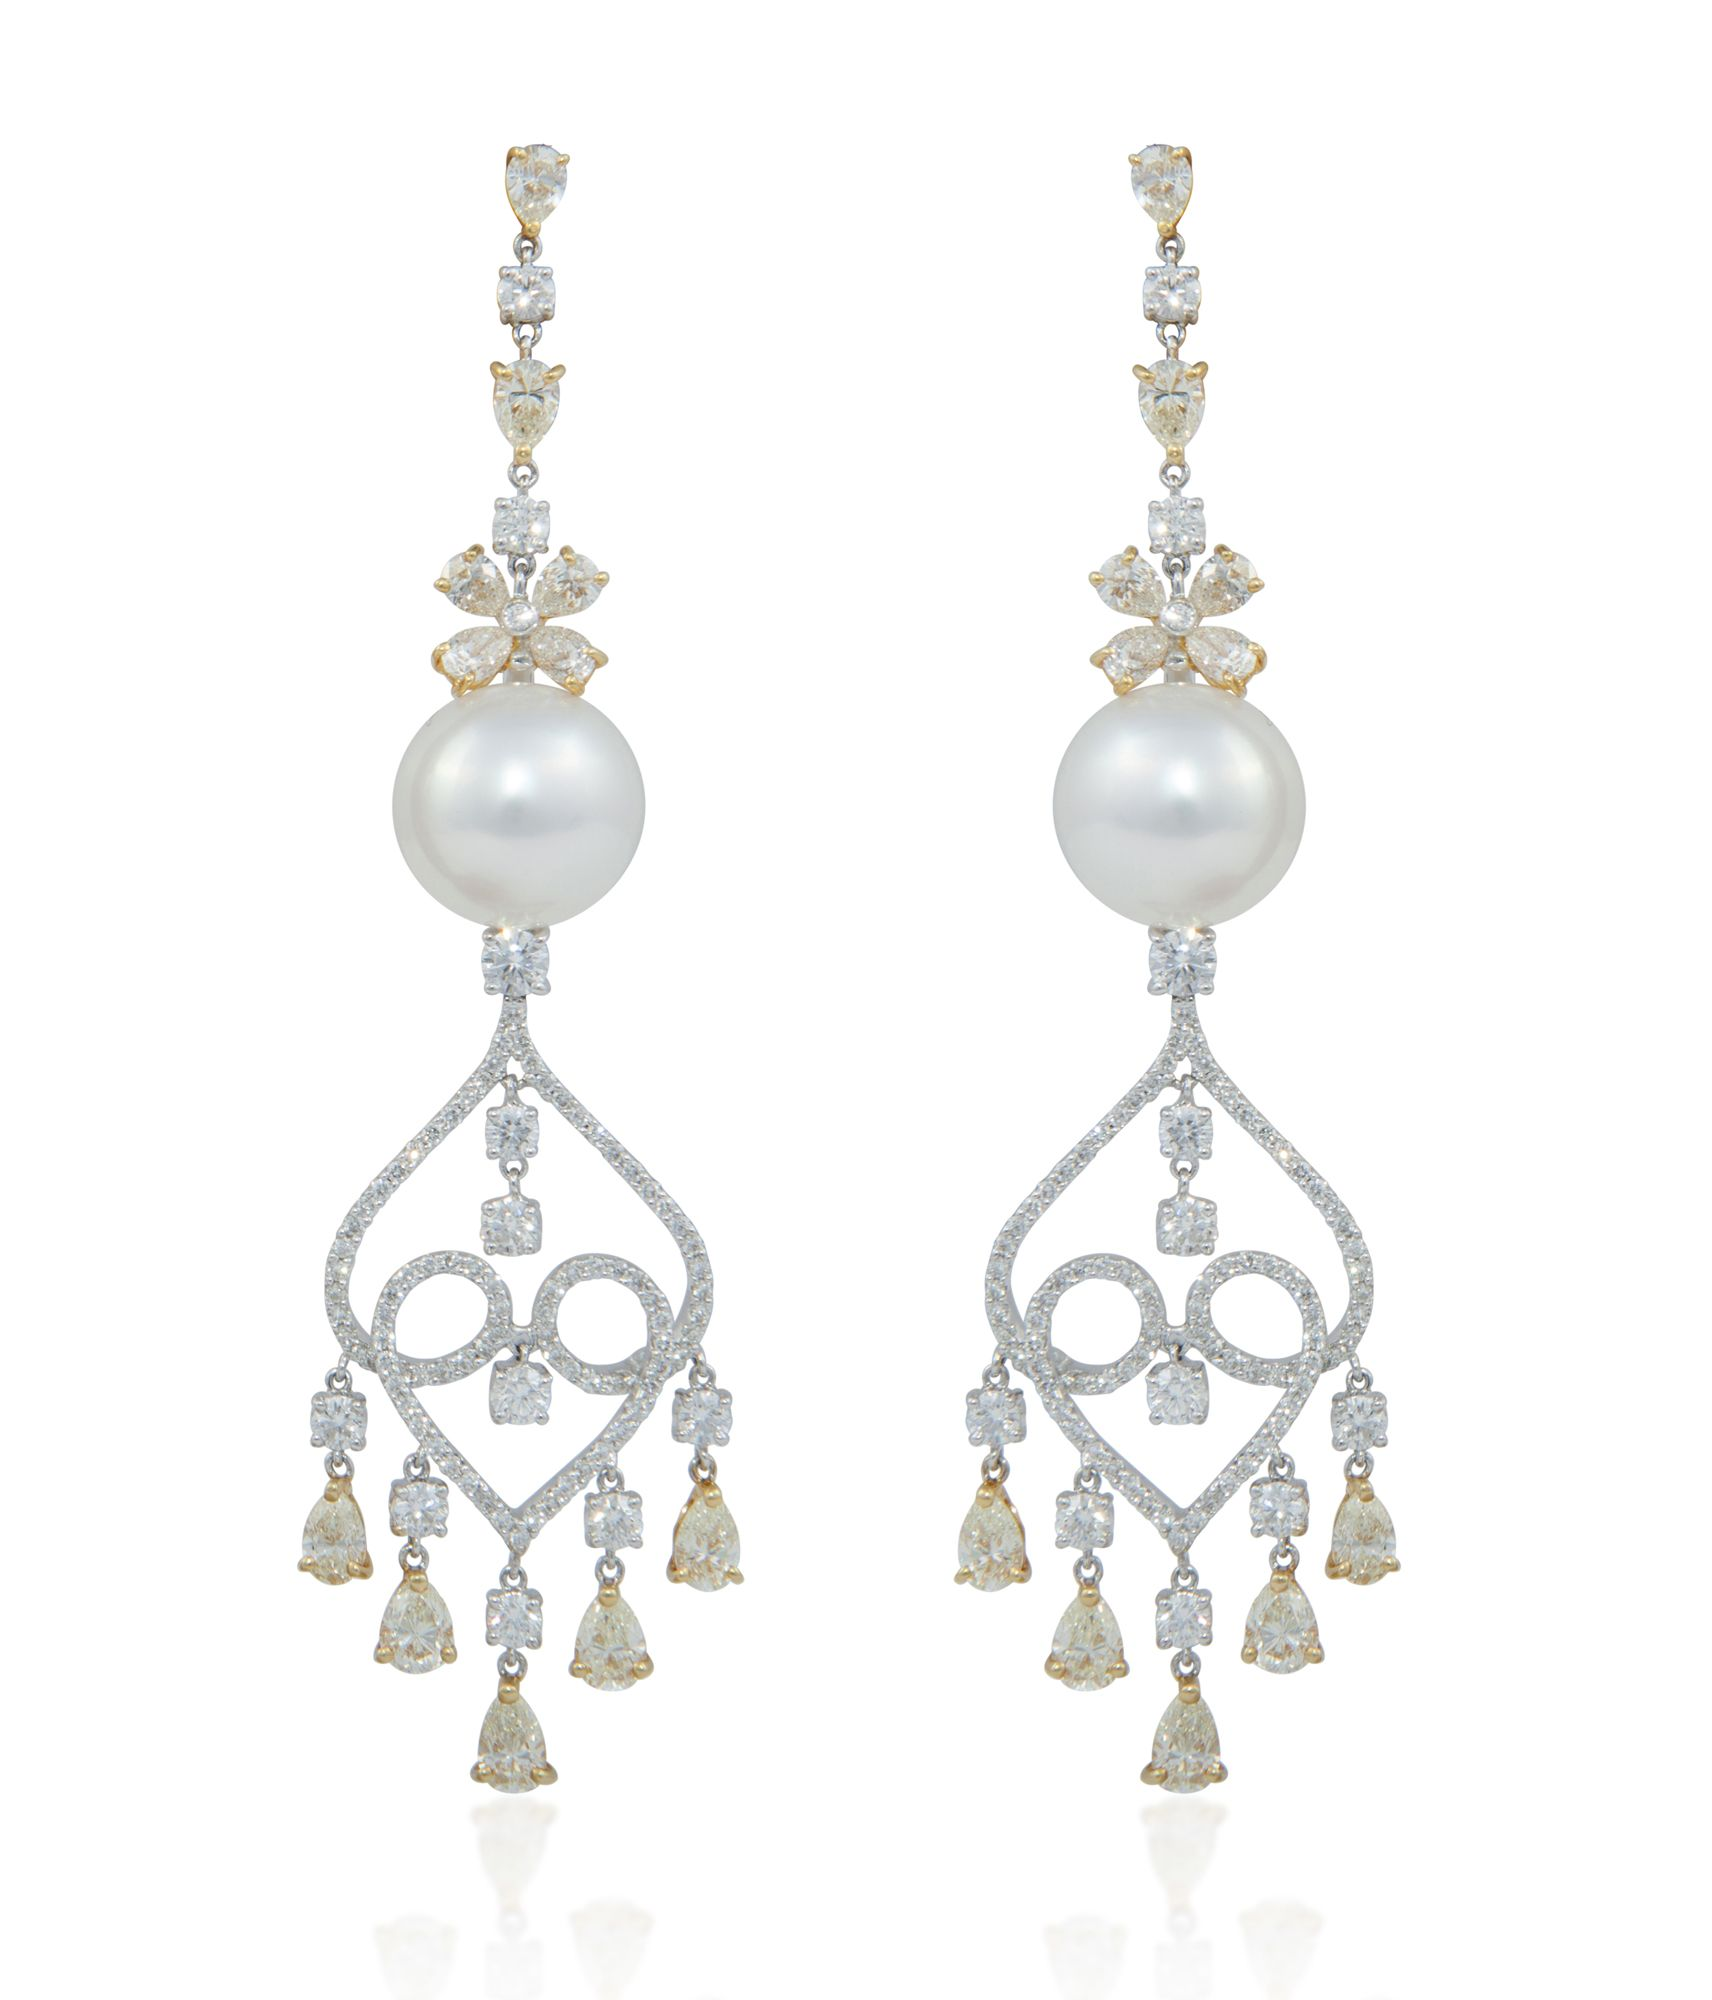 William noble william noble jewels earrings pearl and diamond william noble william noble jewels earrings pearl and diamond chandelier earrings aloadofball Image collections